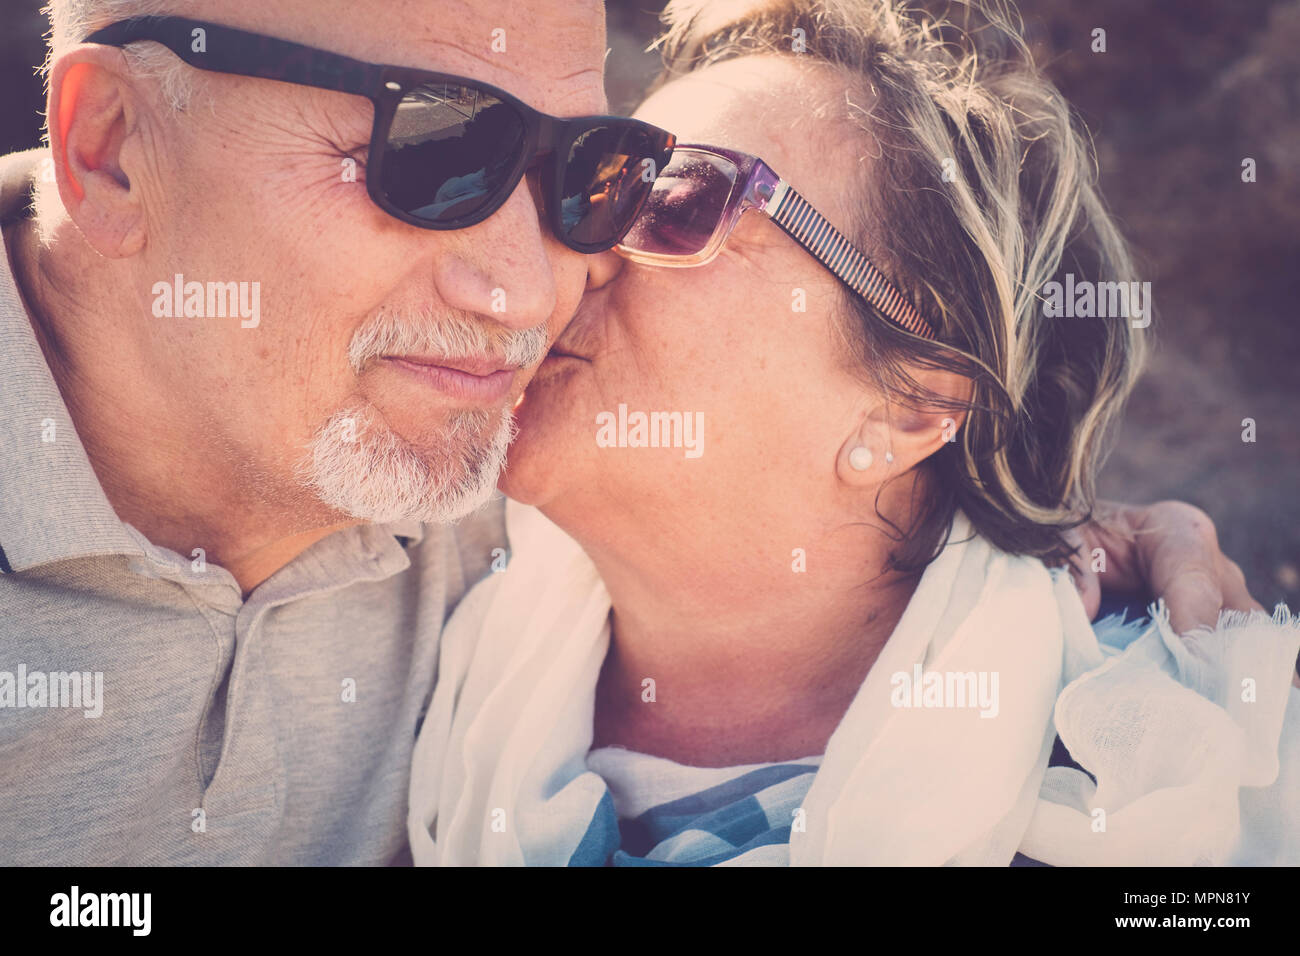 Nice love moments for two elderly woman and man kissing together with emotion. Close up scene of life to live forever. Smile and enjoy time. - Stock Image